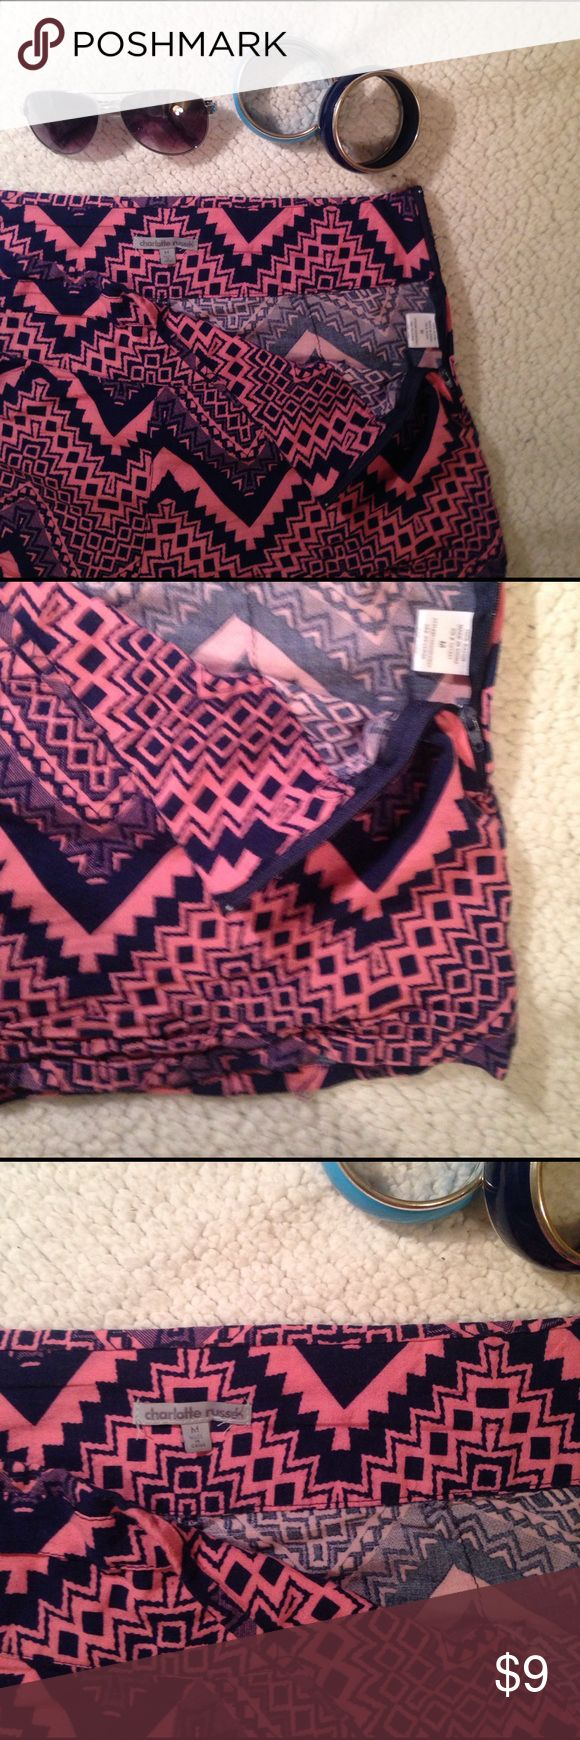 Aztec print shorts Charlotte Russe Slightly worn with a zipper up the right size. Sooo comfortable!! Price marked accordingly. Charlotte Russe Shorts